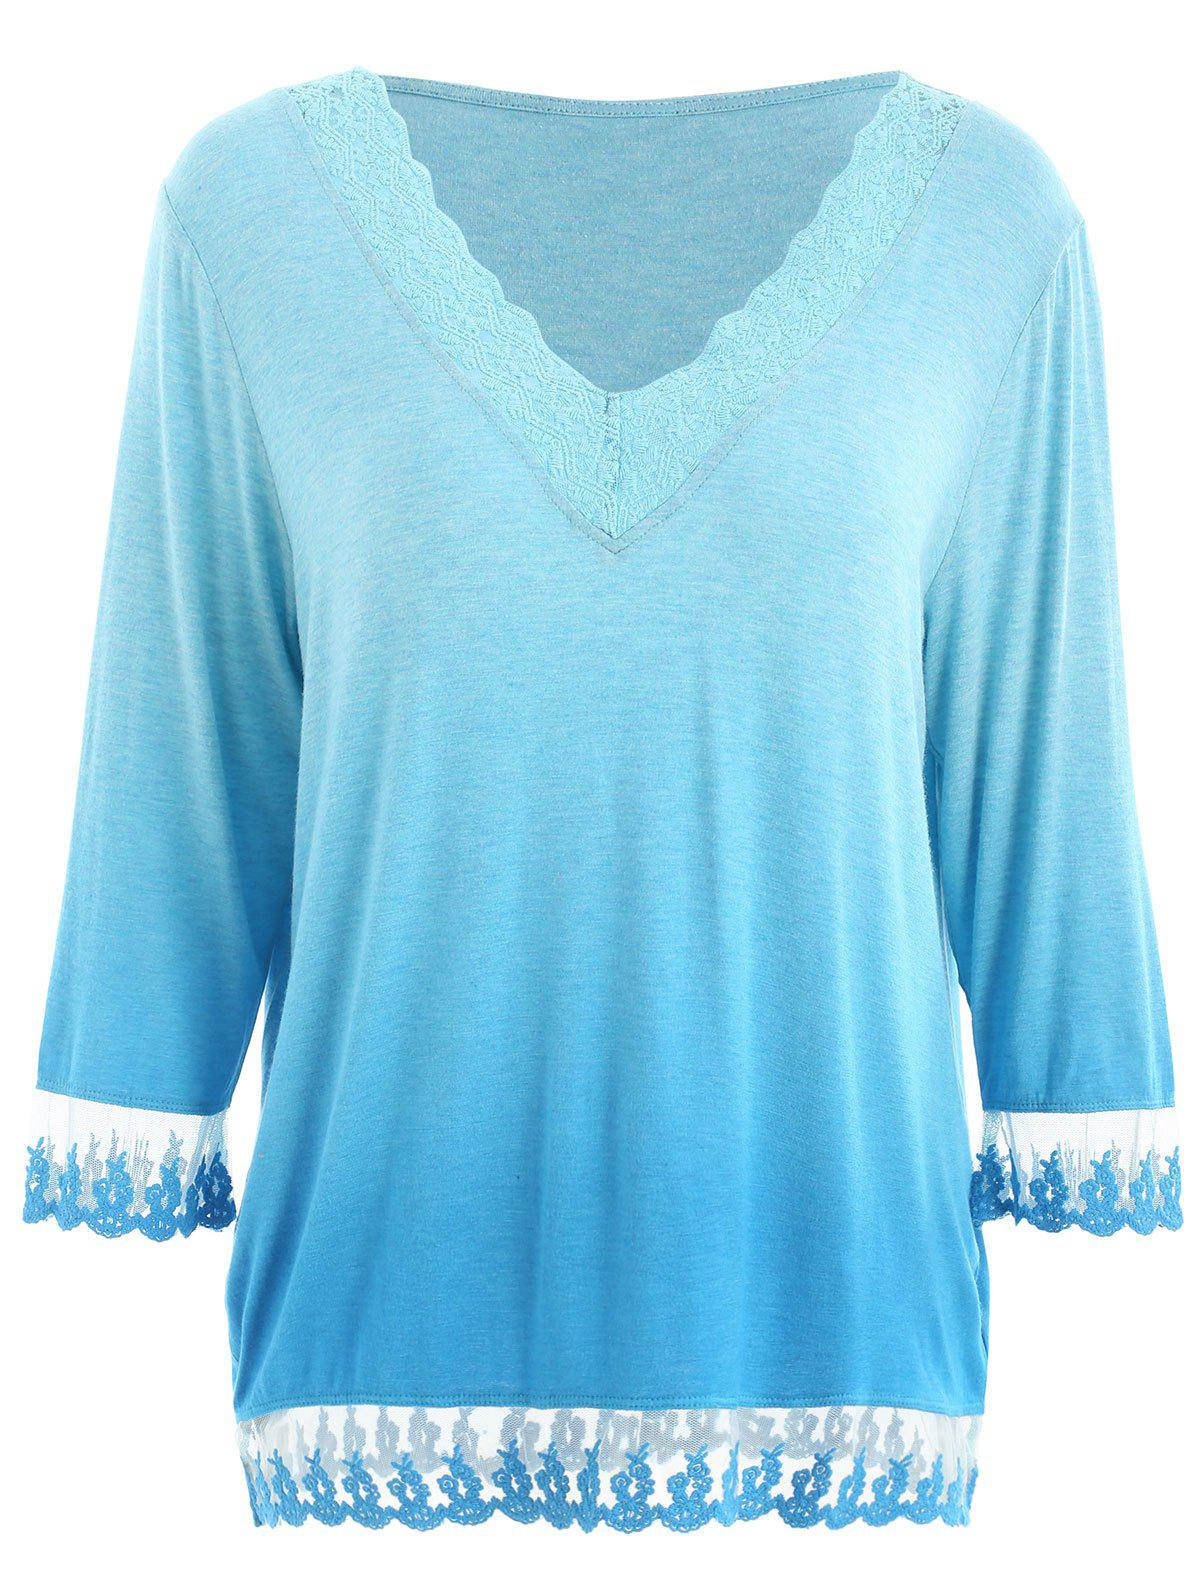 Chic Lace Insert Ombre T-shirt